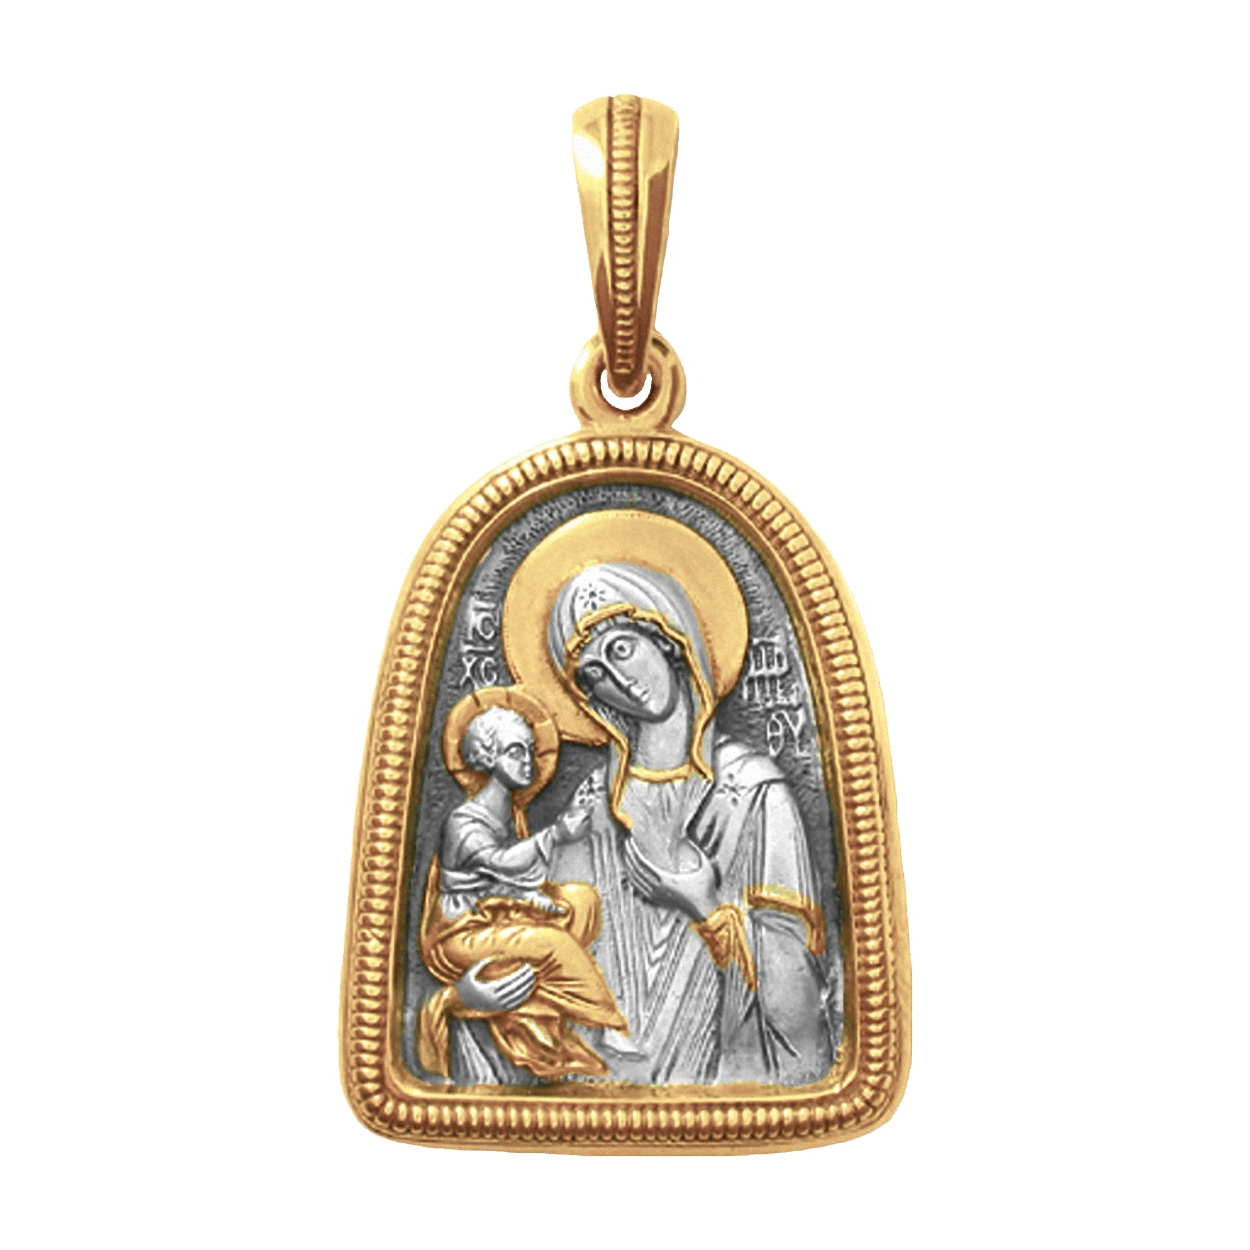 Russian-Orthodox-icon-silver-medal-pendant-OUR-LADY-OF-JERUSALEM-Master-Jeweler-Fedorov